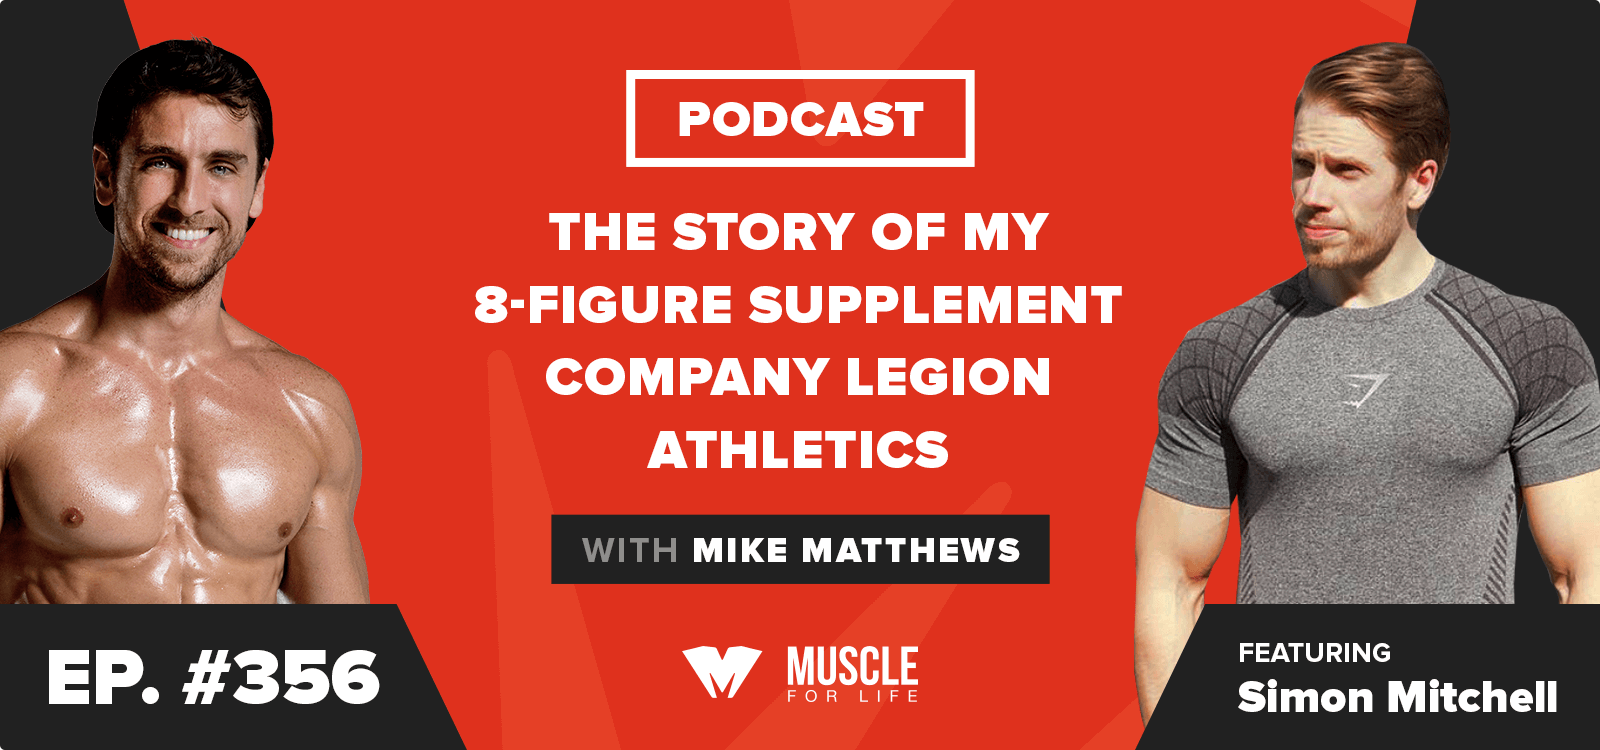 The Story of My 8-Figure Supplement Company Legion Athletics